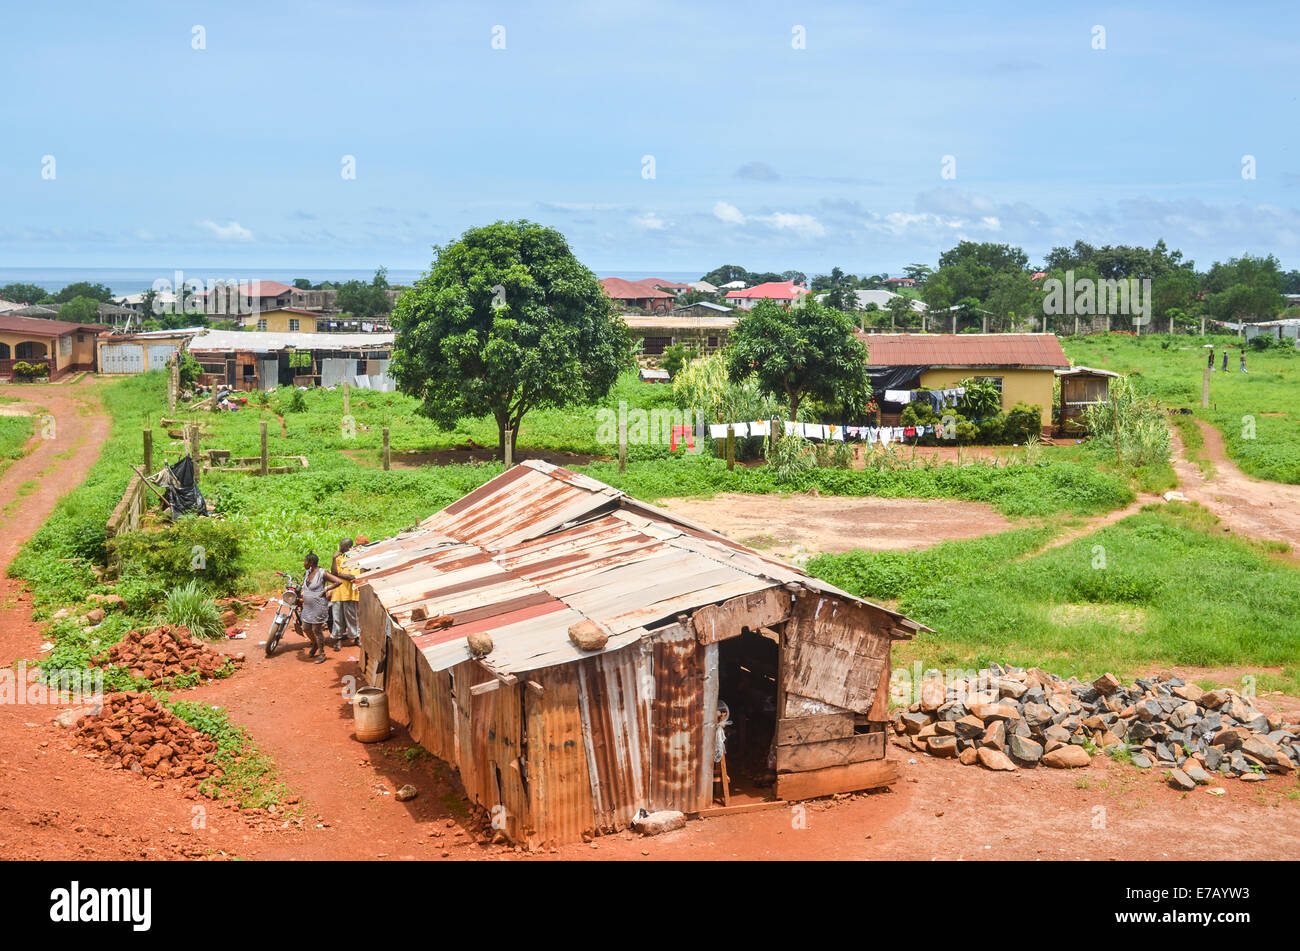 Suburbs of Freetown, Sierra Leone - Stock Image